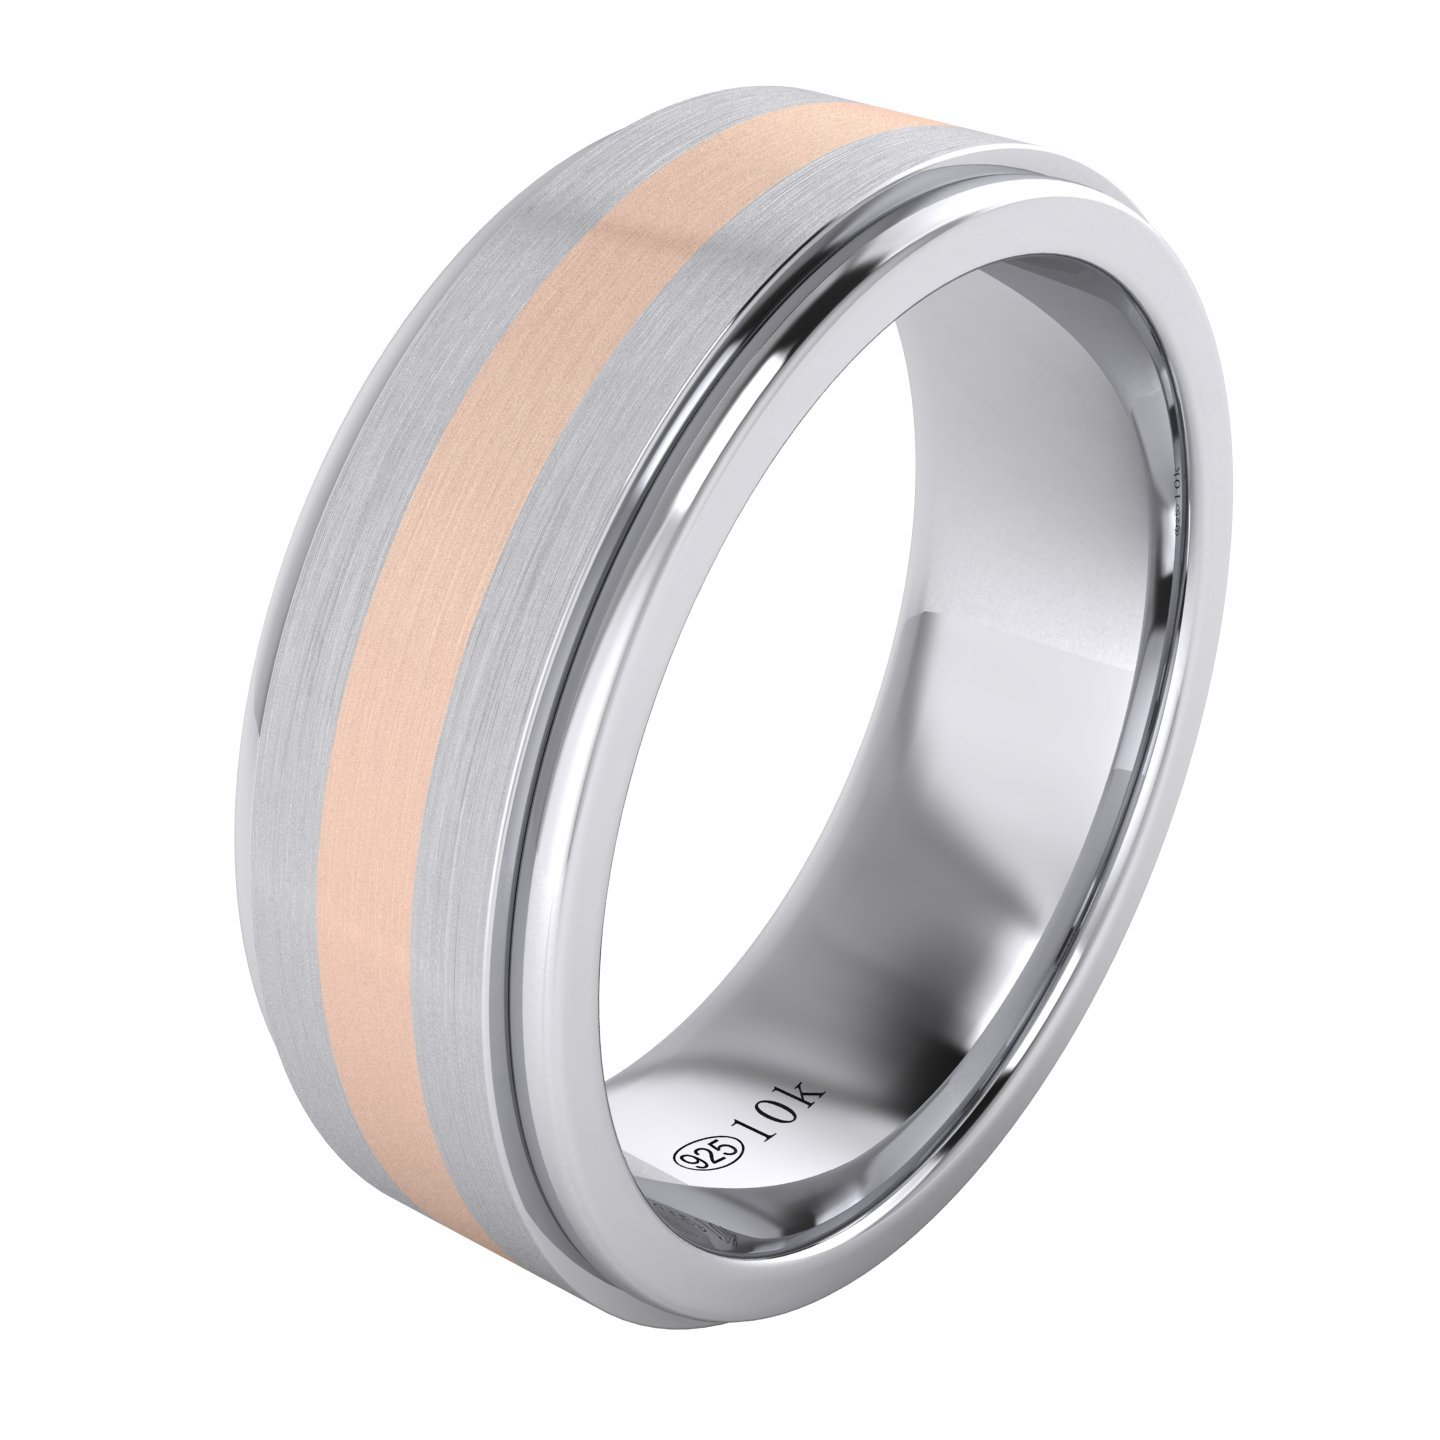 LANDA JEWEL Solid 10K Rose Gold Inlaid Heavy 8mm Sterling Silver Mens Wedding Band Comfort Fit Two Tone (11.5)